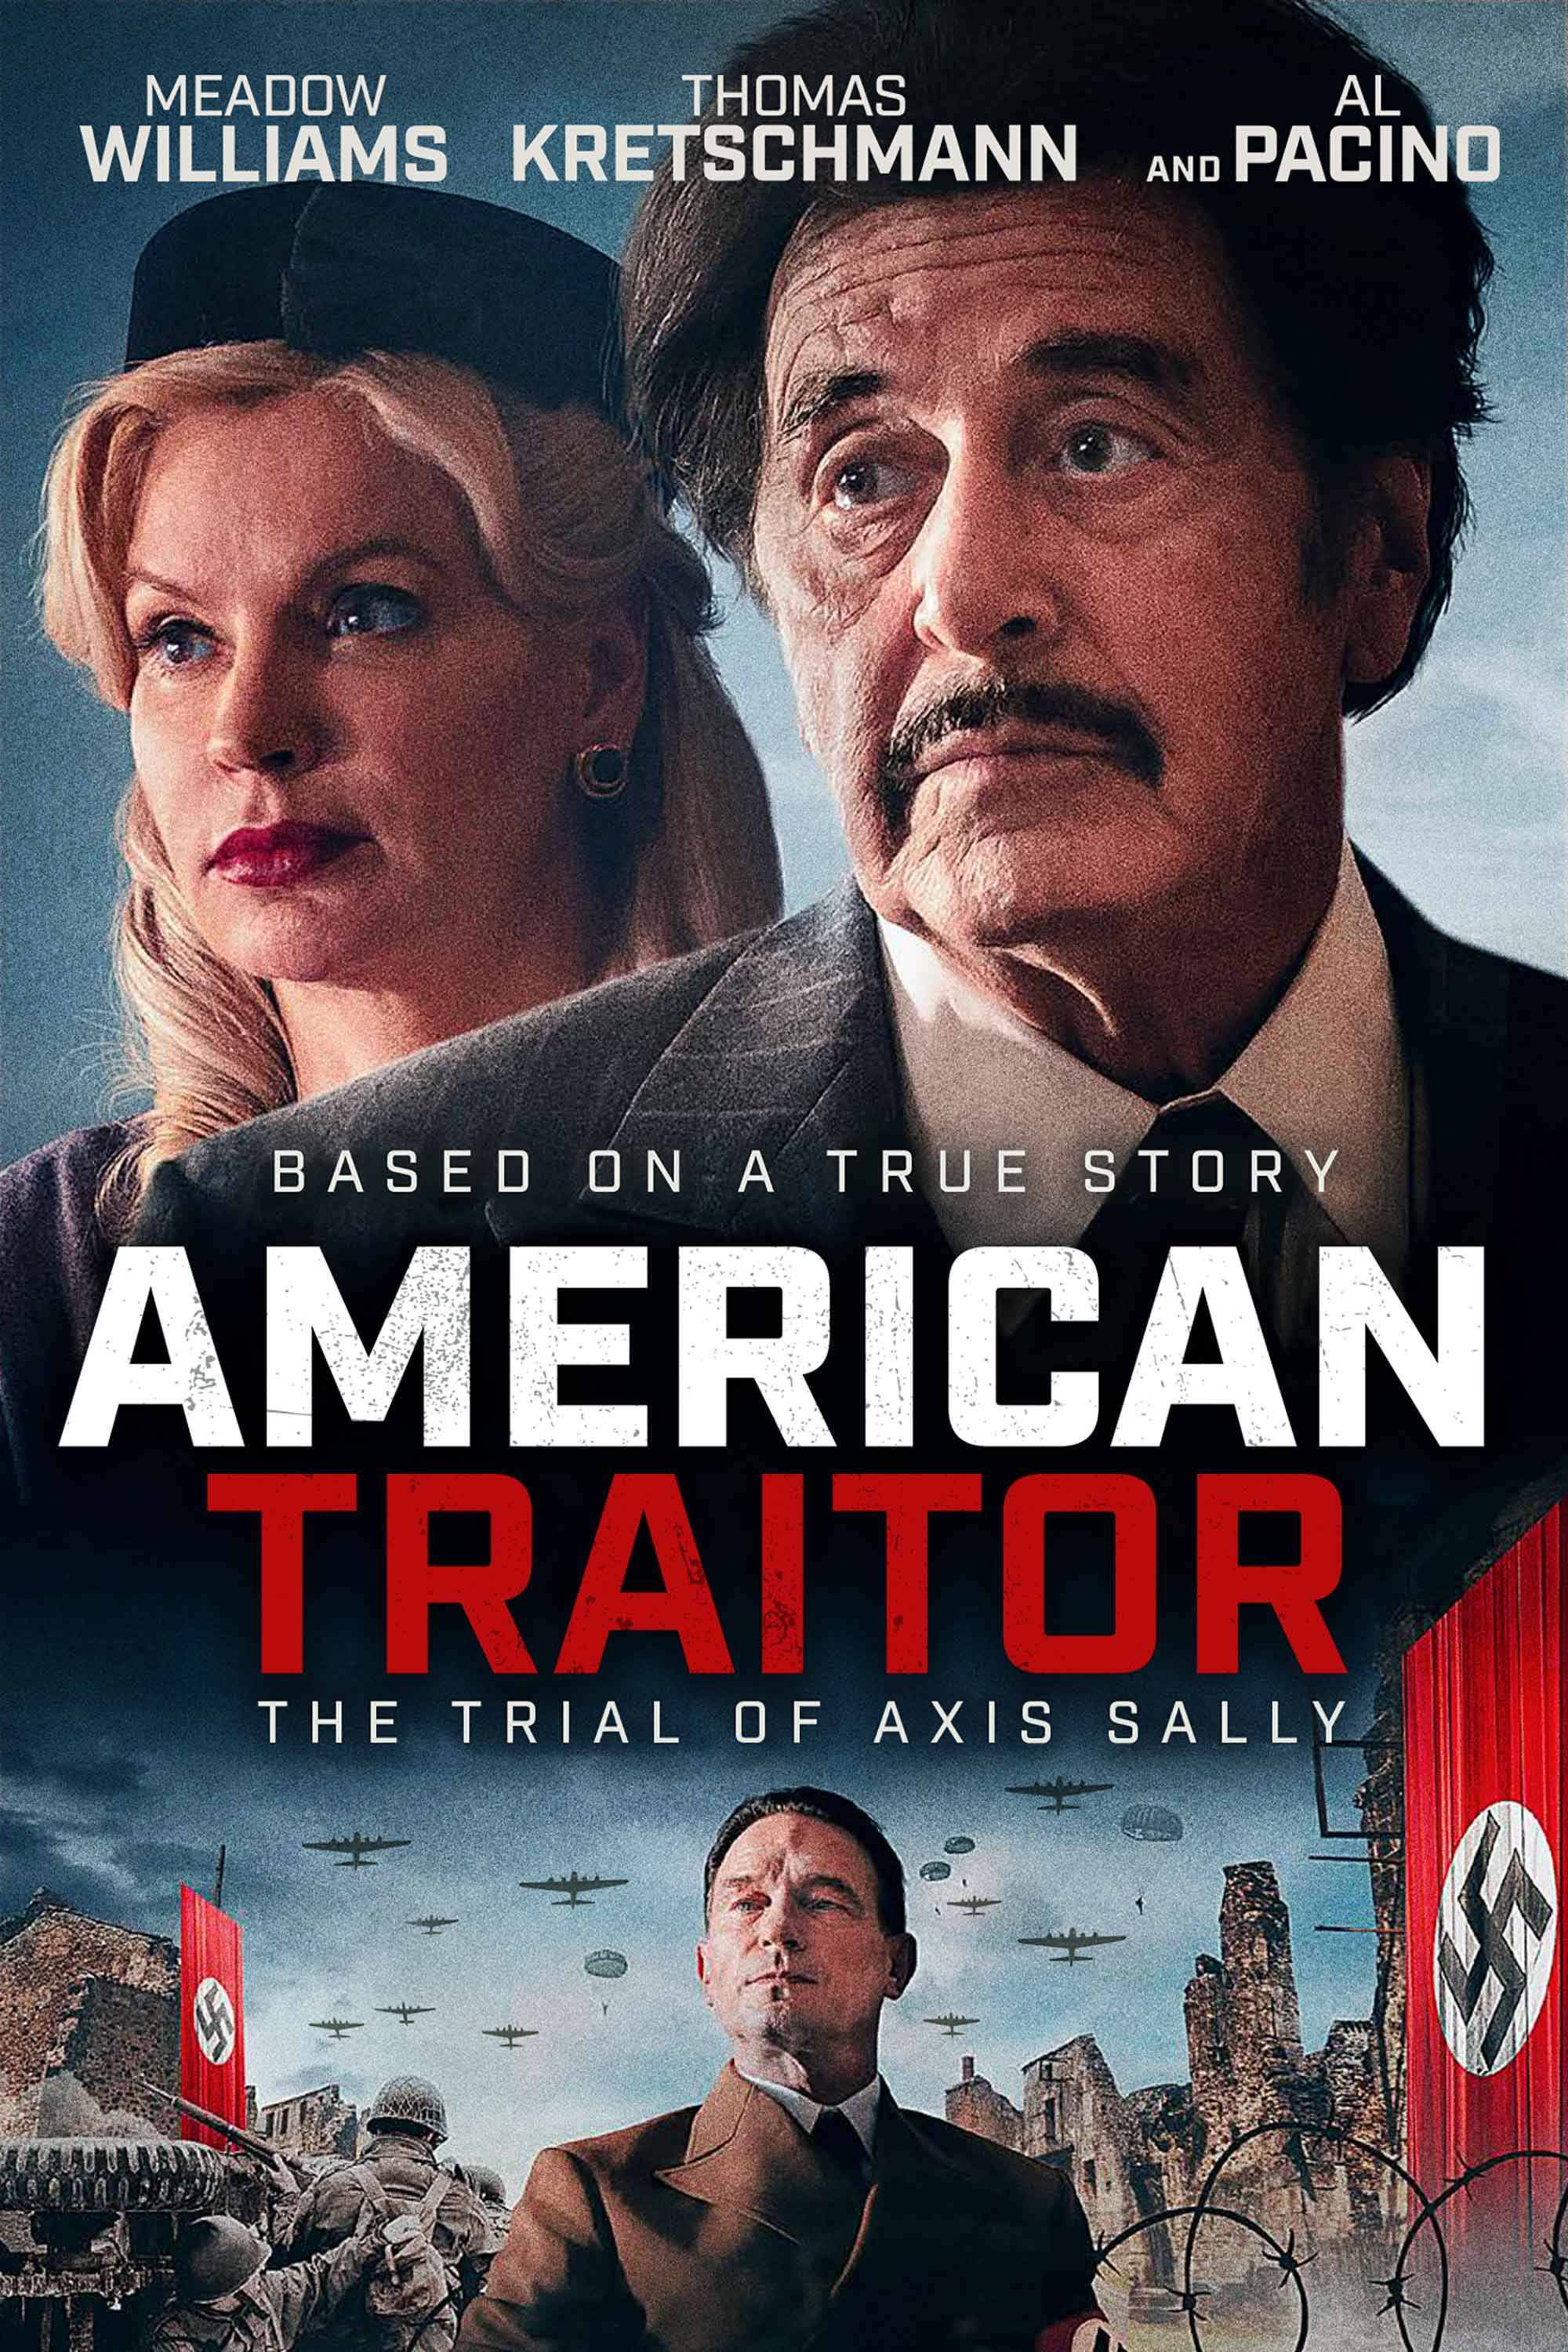 American Traitor The Trial of Axis Sally 2021 English 1080p HDRip 1.4GB